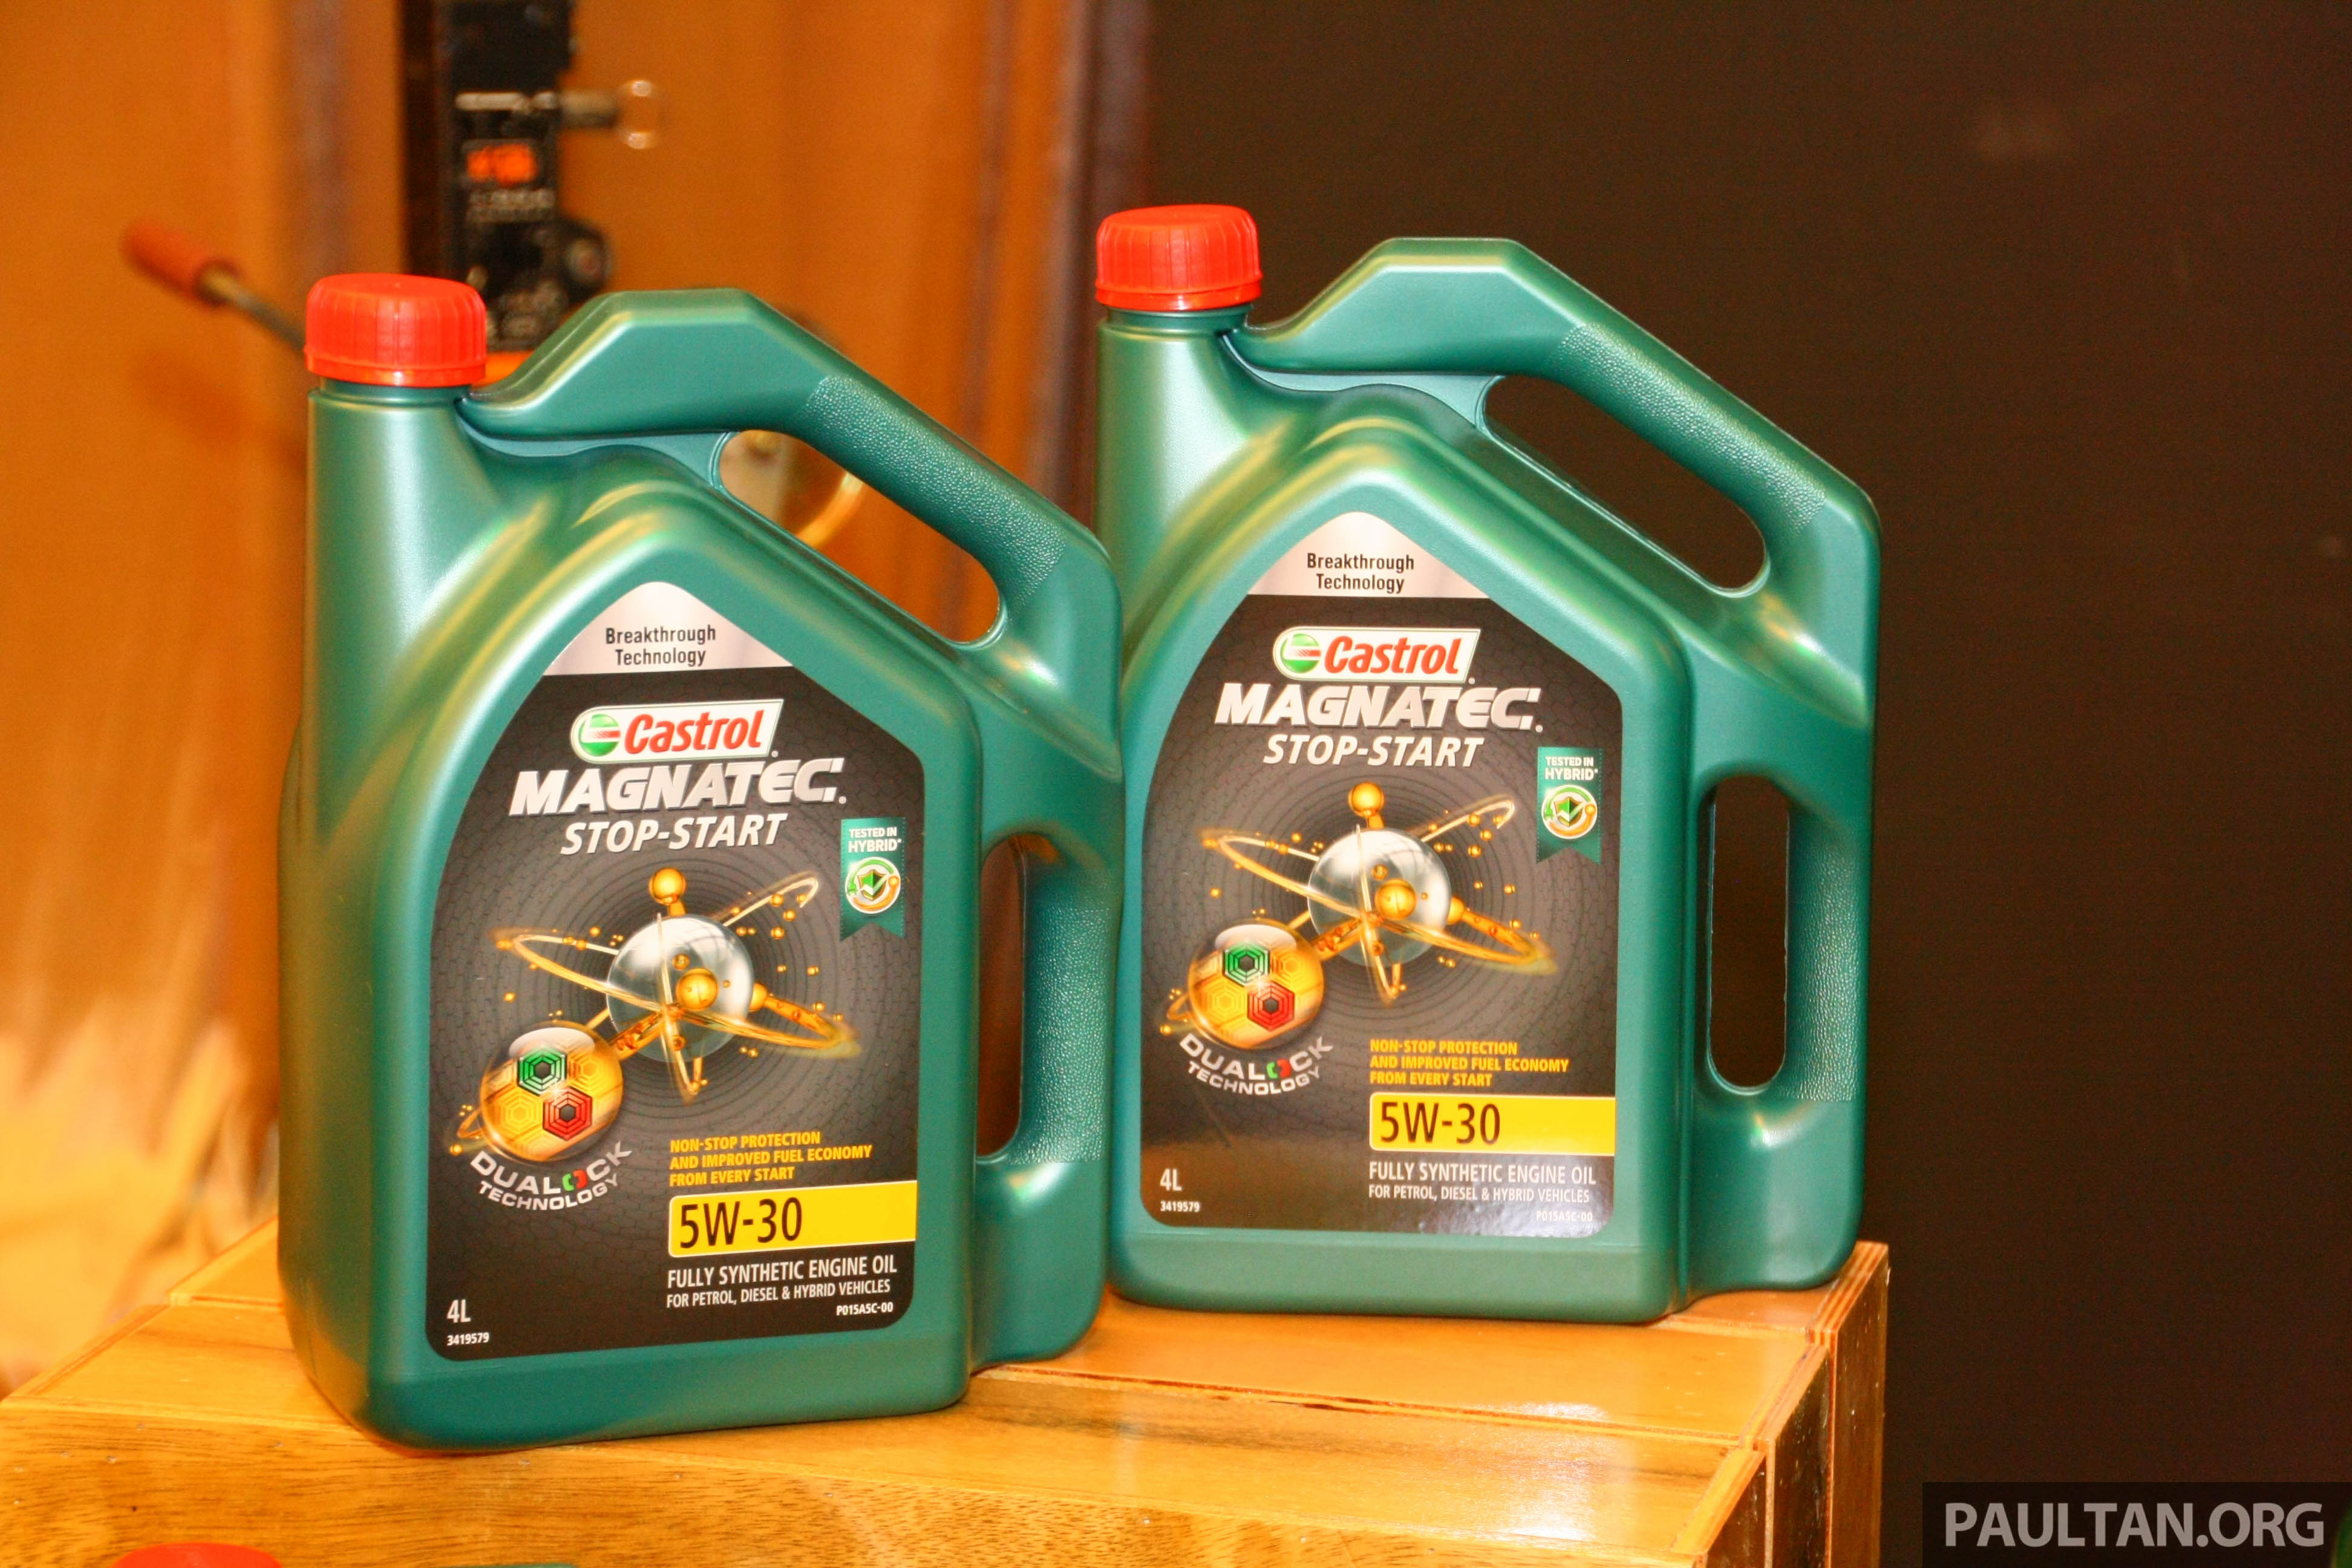 Castrol Launches Magnatec Lubricant With Dualock Technology Stop Start 5w 30 Developed For Traffic Image